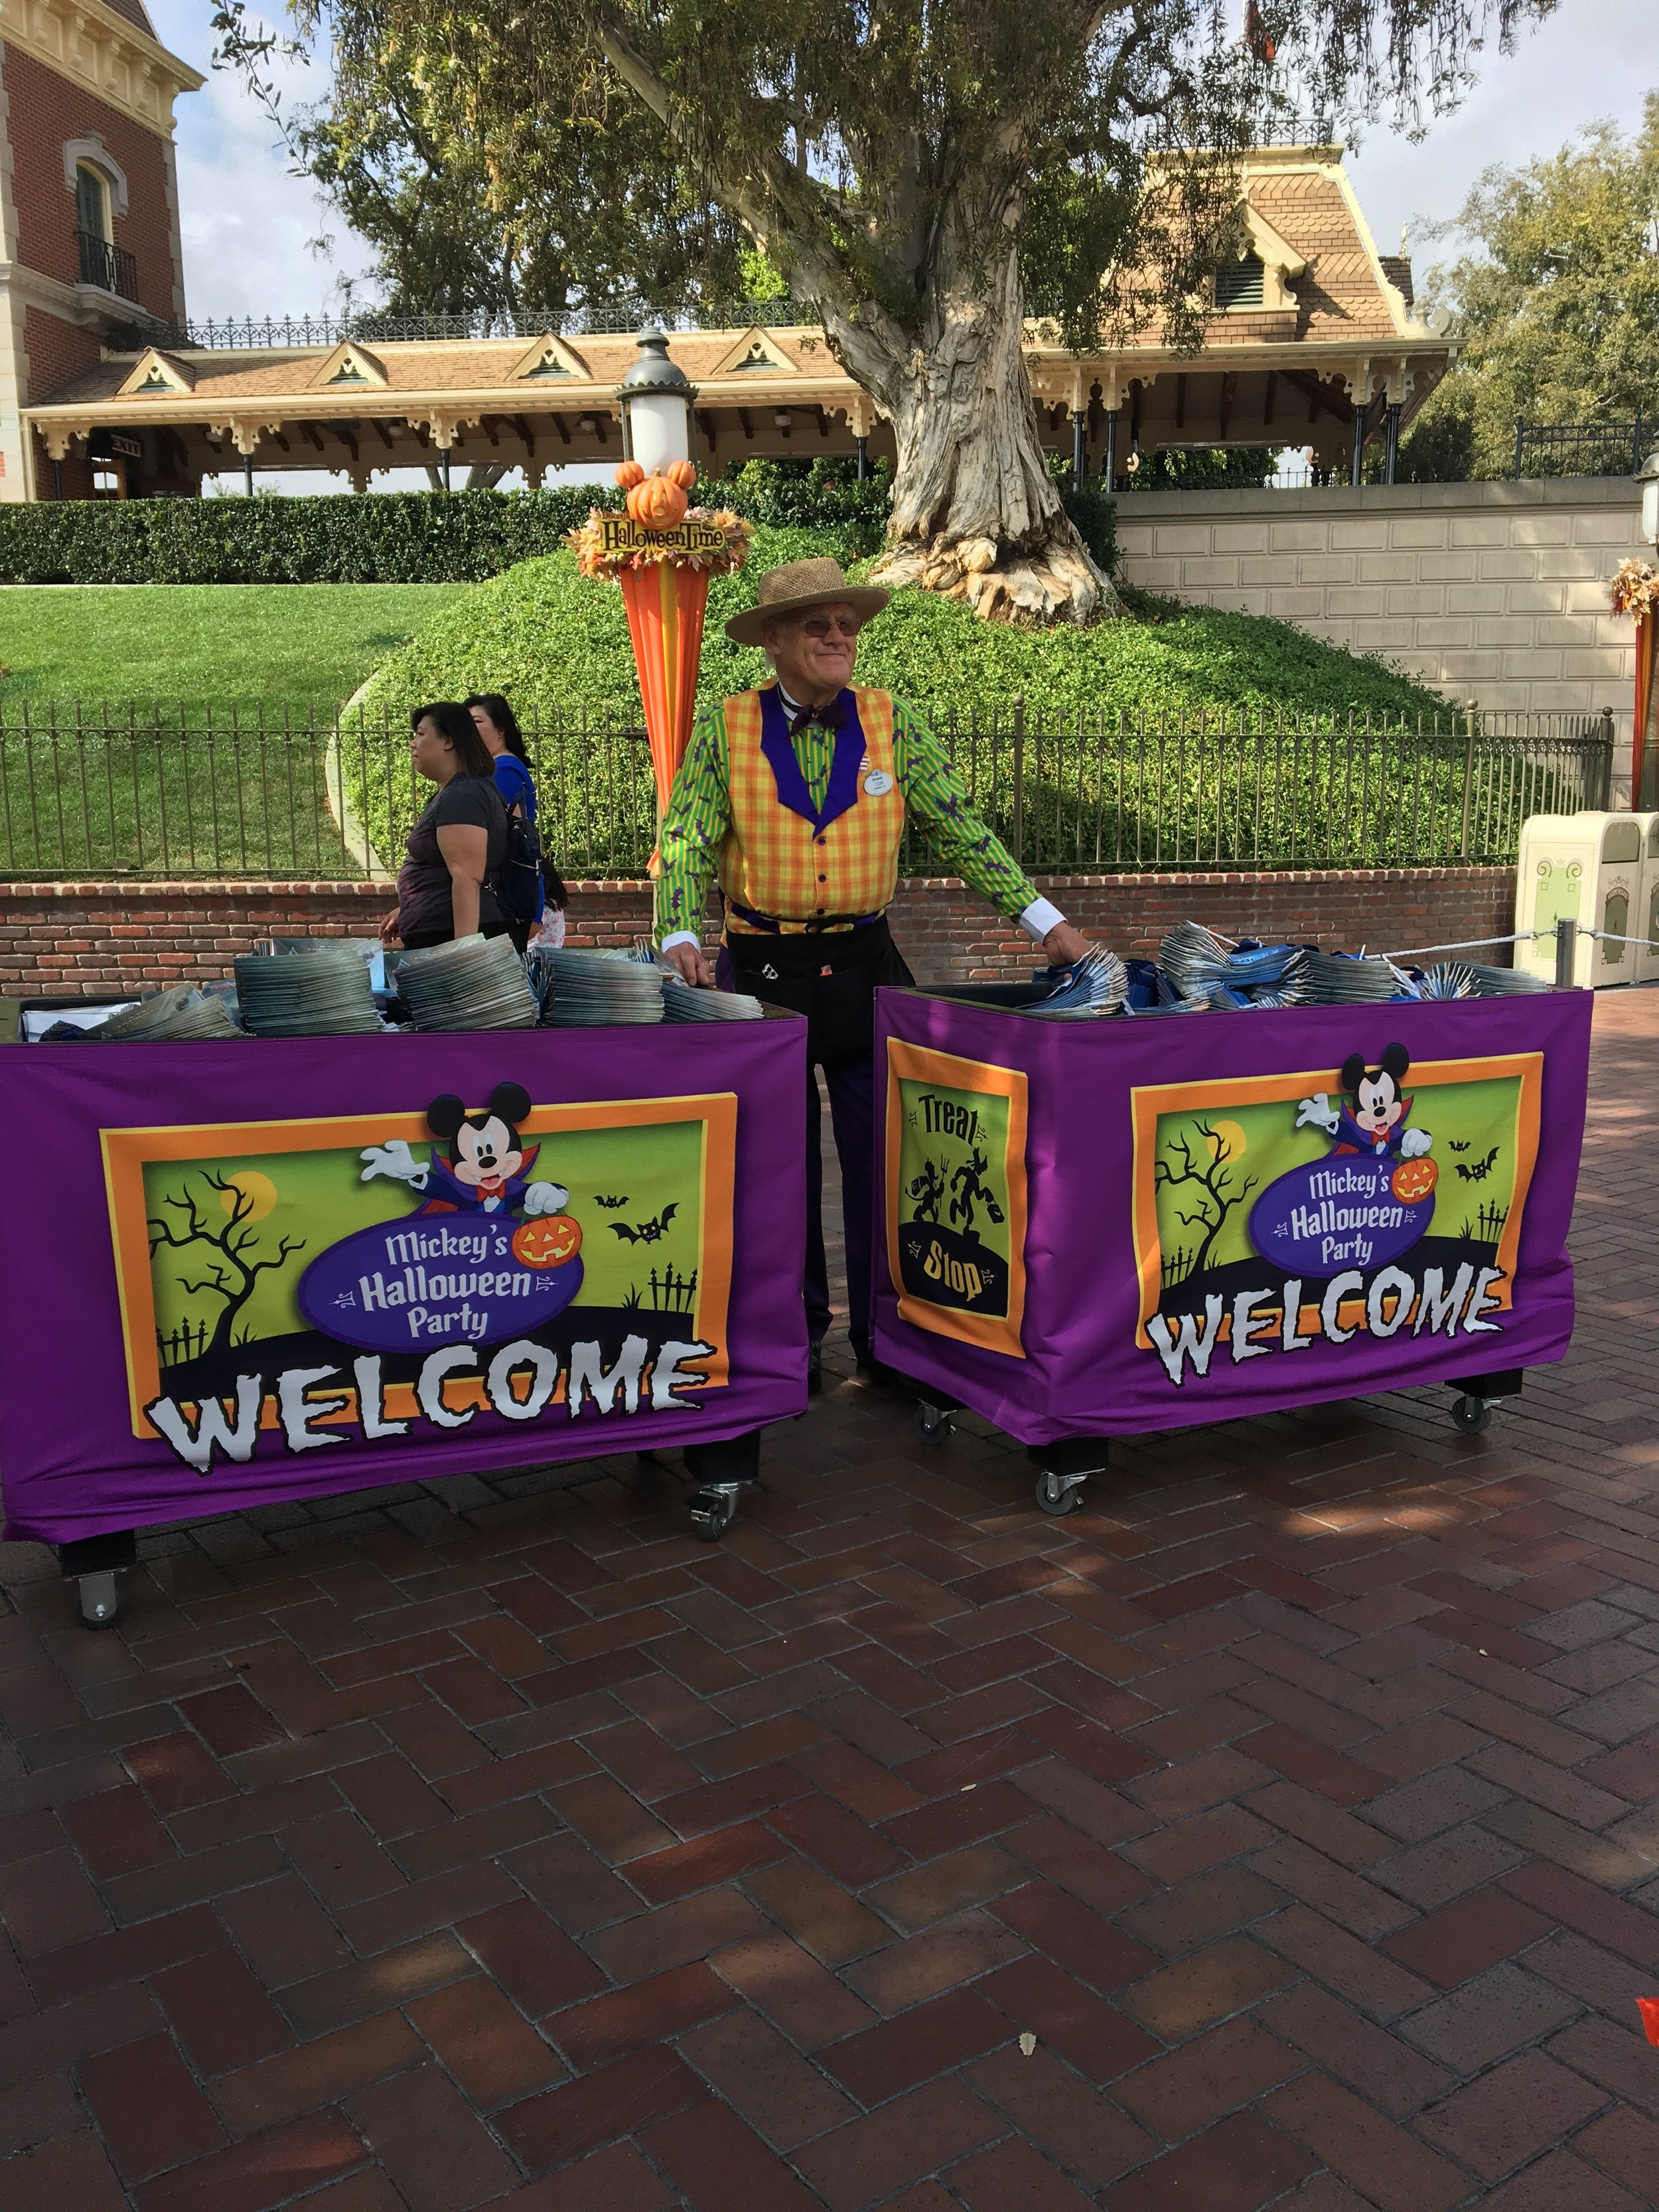 Five Things To Skip At Oogie Boogie Bash. #Disneyland #Mickey'sHalloweenParty #MickeysHalloweenParty2019 #OogieBoogieBash #OogieBoogieBashDisneyland #Disneyland #DisneyCaliforniaAdventure #DCA #DisneylandHalloween